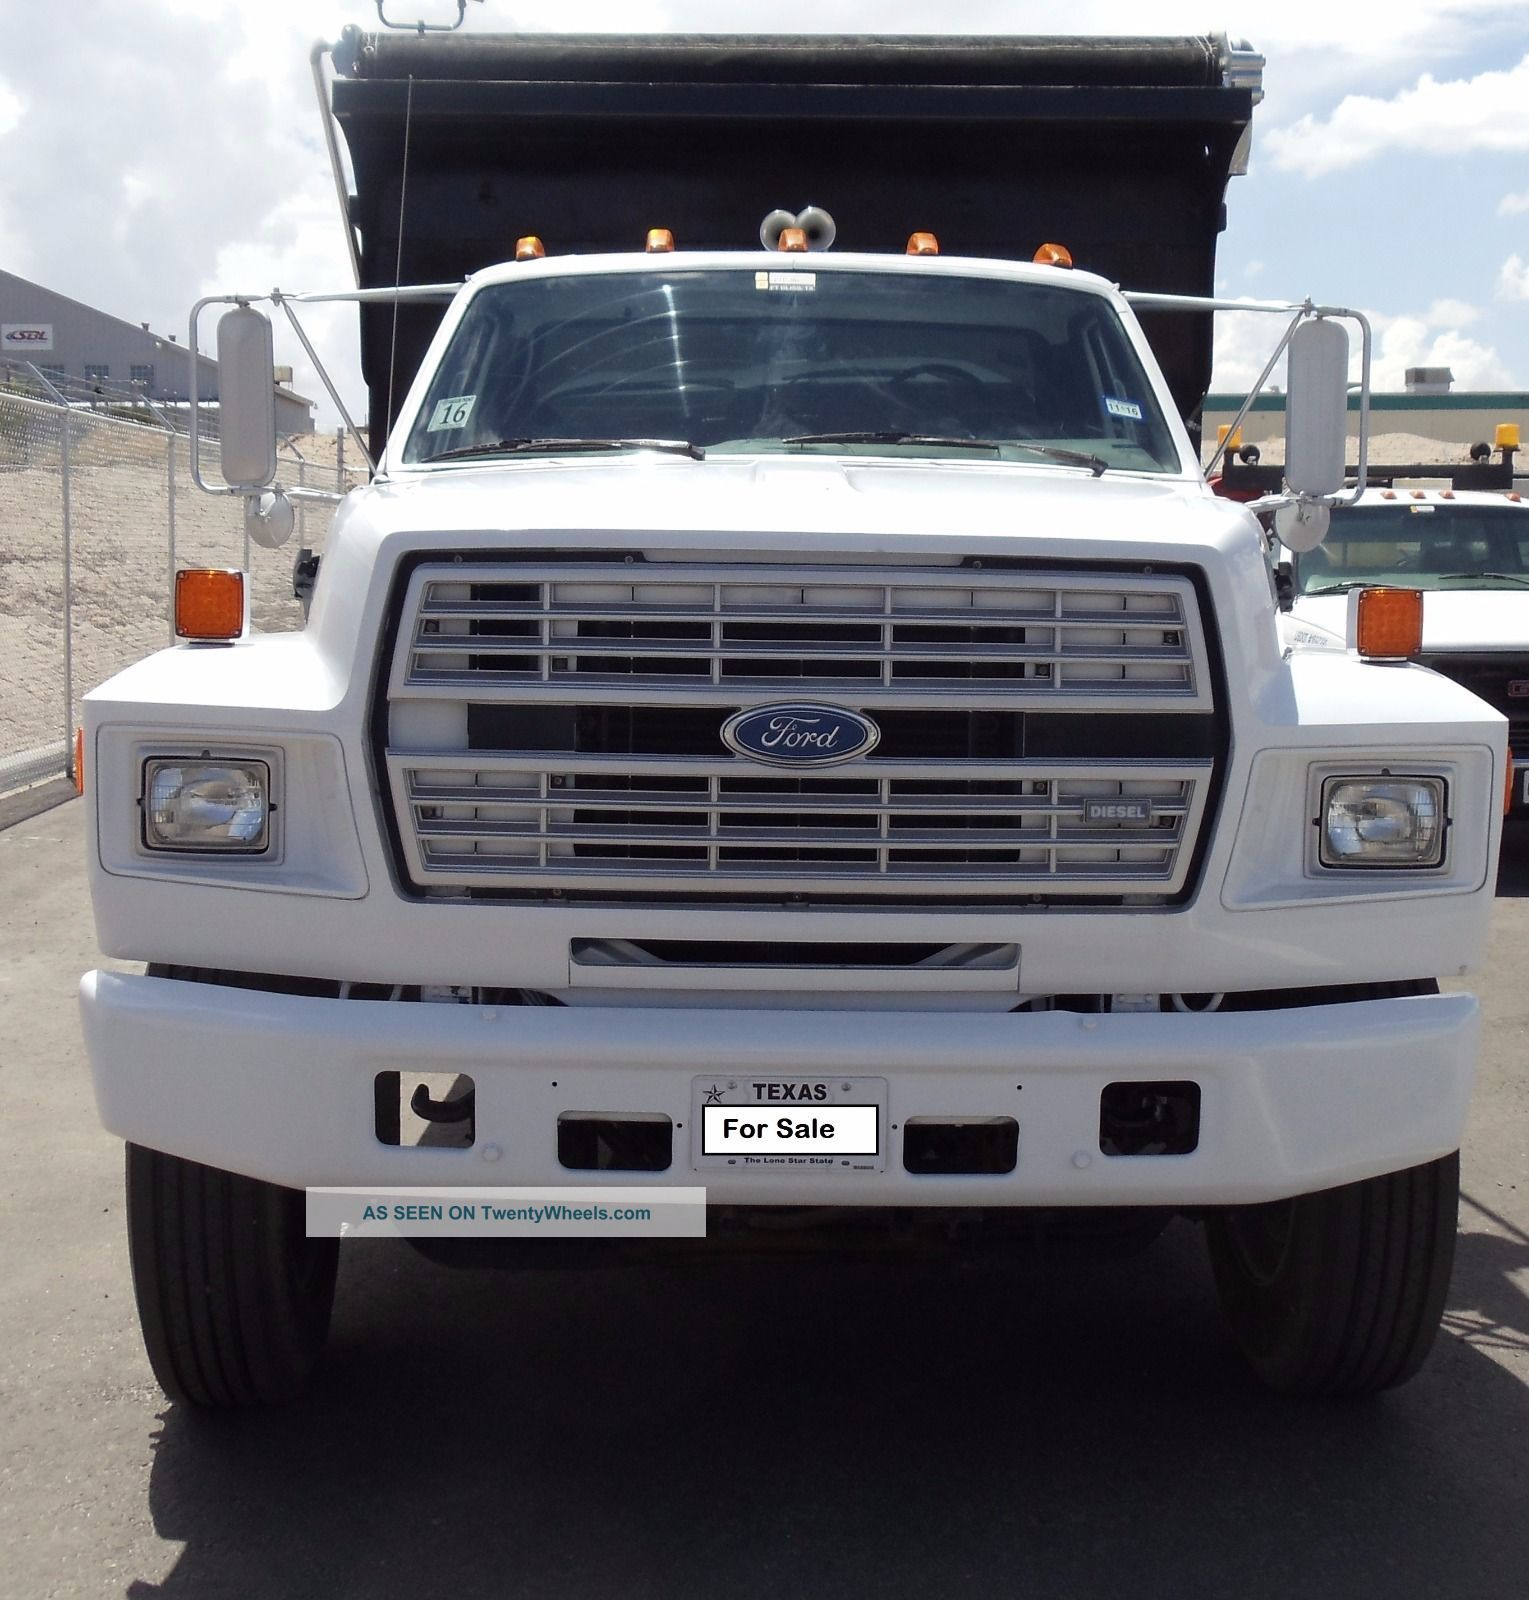 Ford f-7000 photo - 5